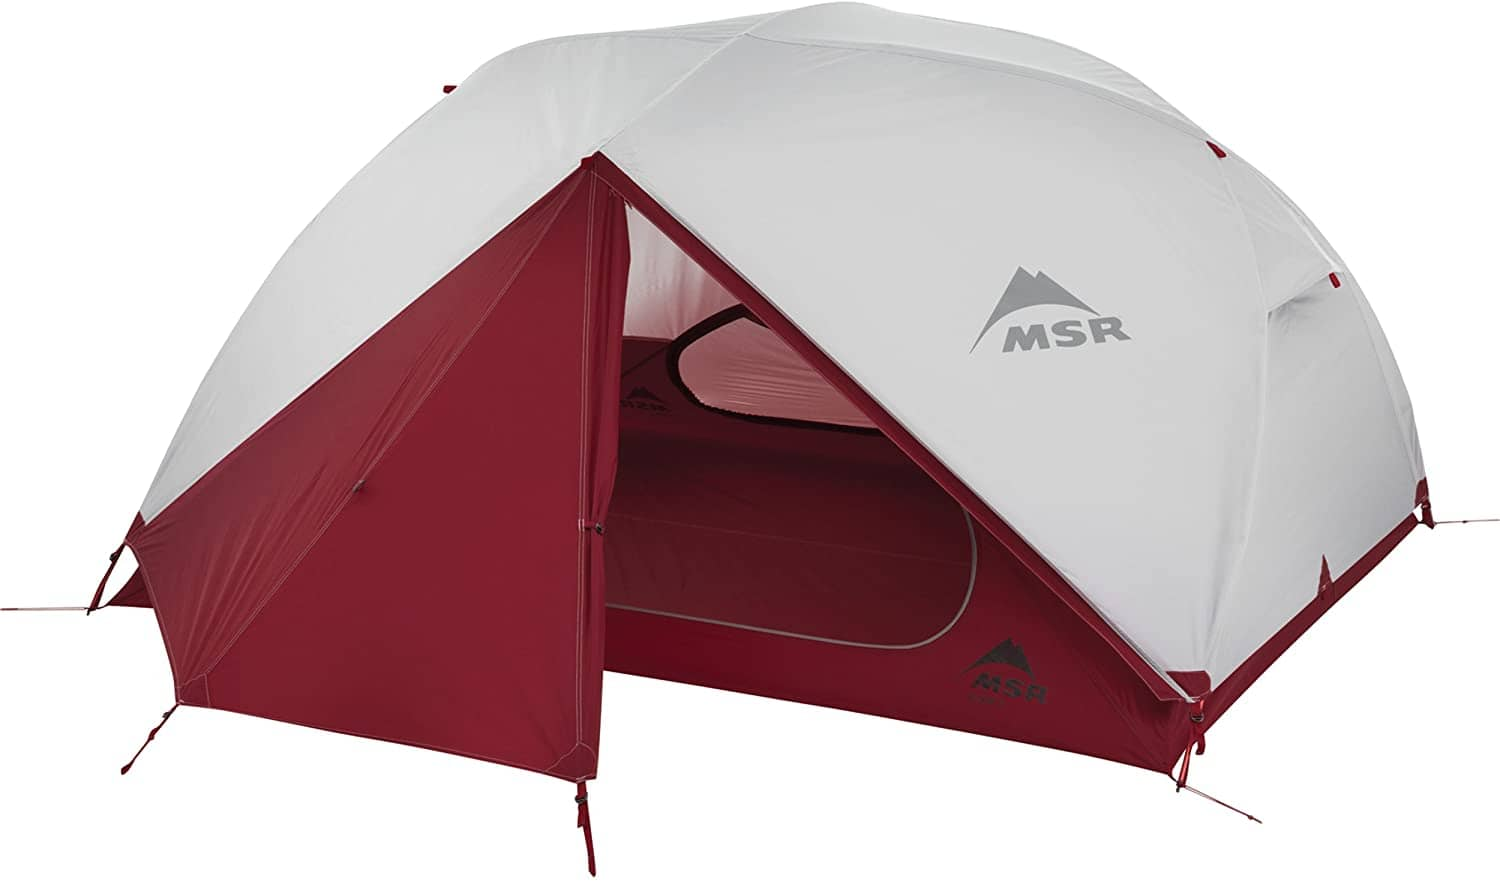 MSR Elixir Tent review